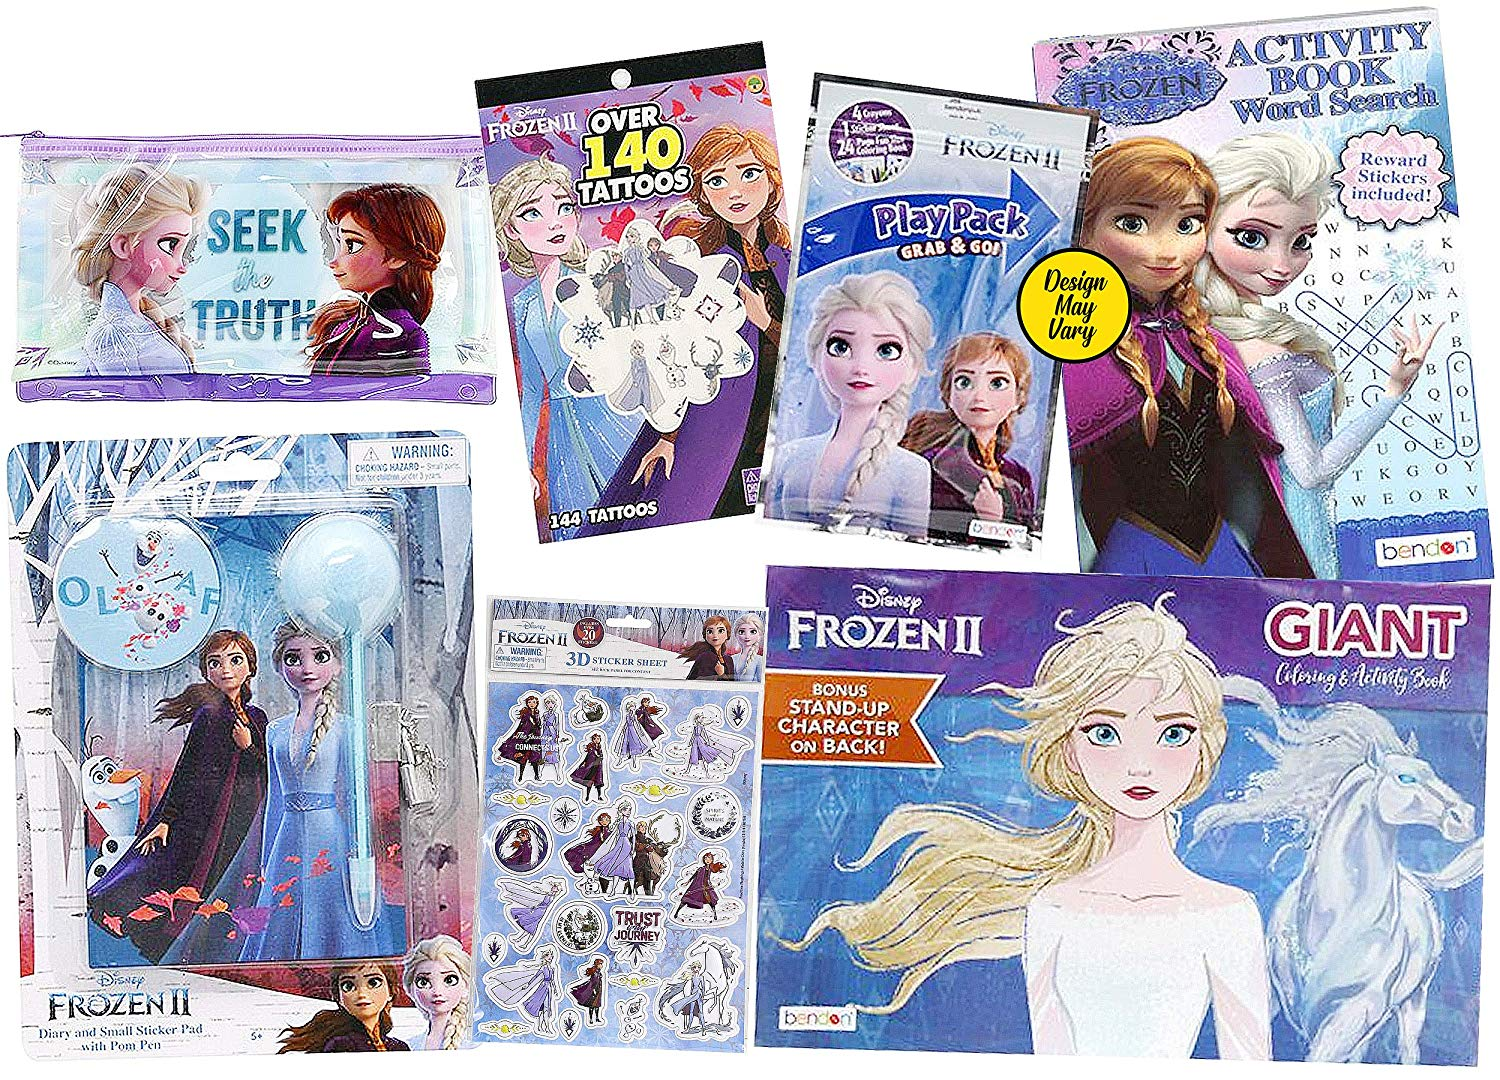 - Frozen 2 Activity Book With Sticker Set, Kid Journal, Frozen Coloring Book,  Frozen Arts And Crafts For Girls, Frozen Activity Book, Sticker Activity  Book, Journal Set, Coloring Book Set, Sticker Book -